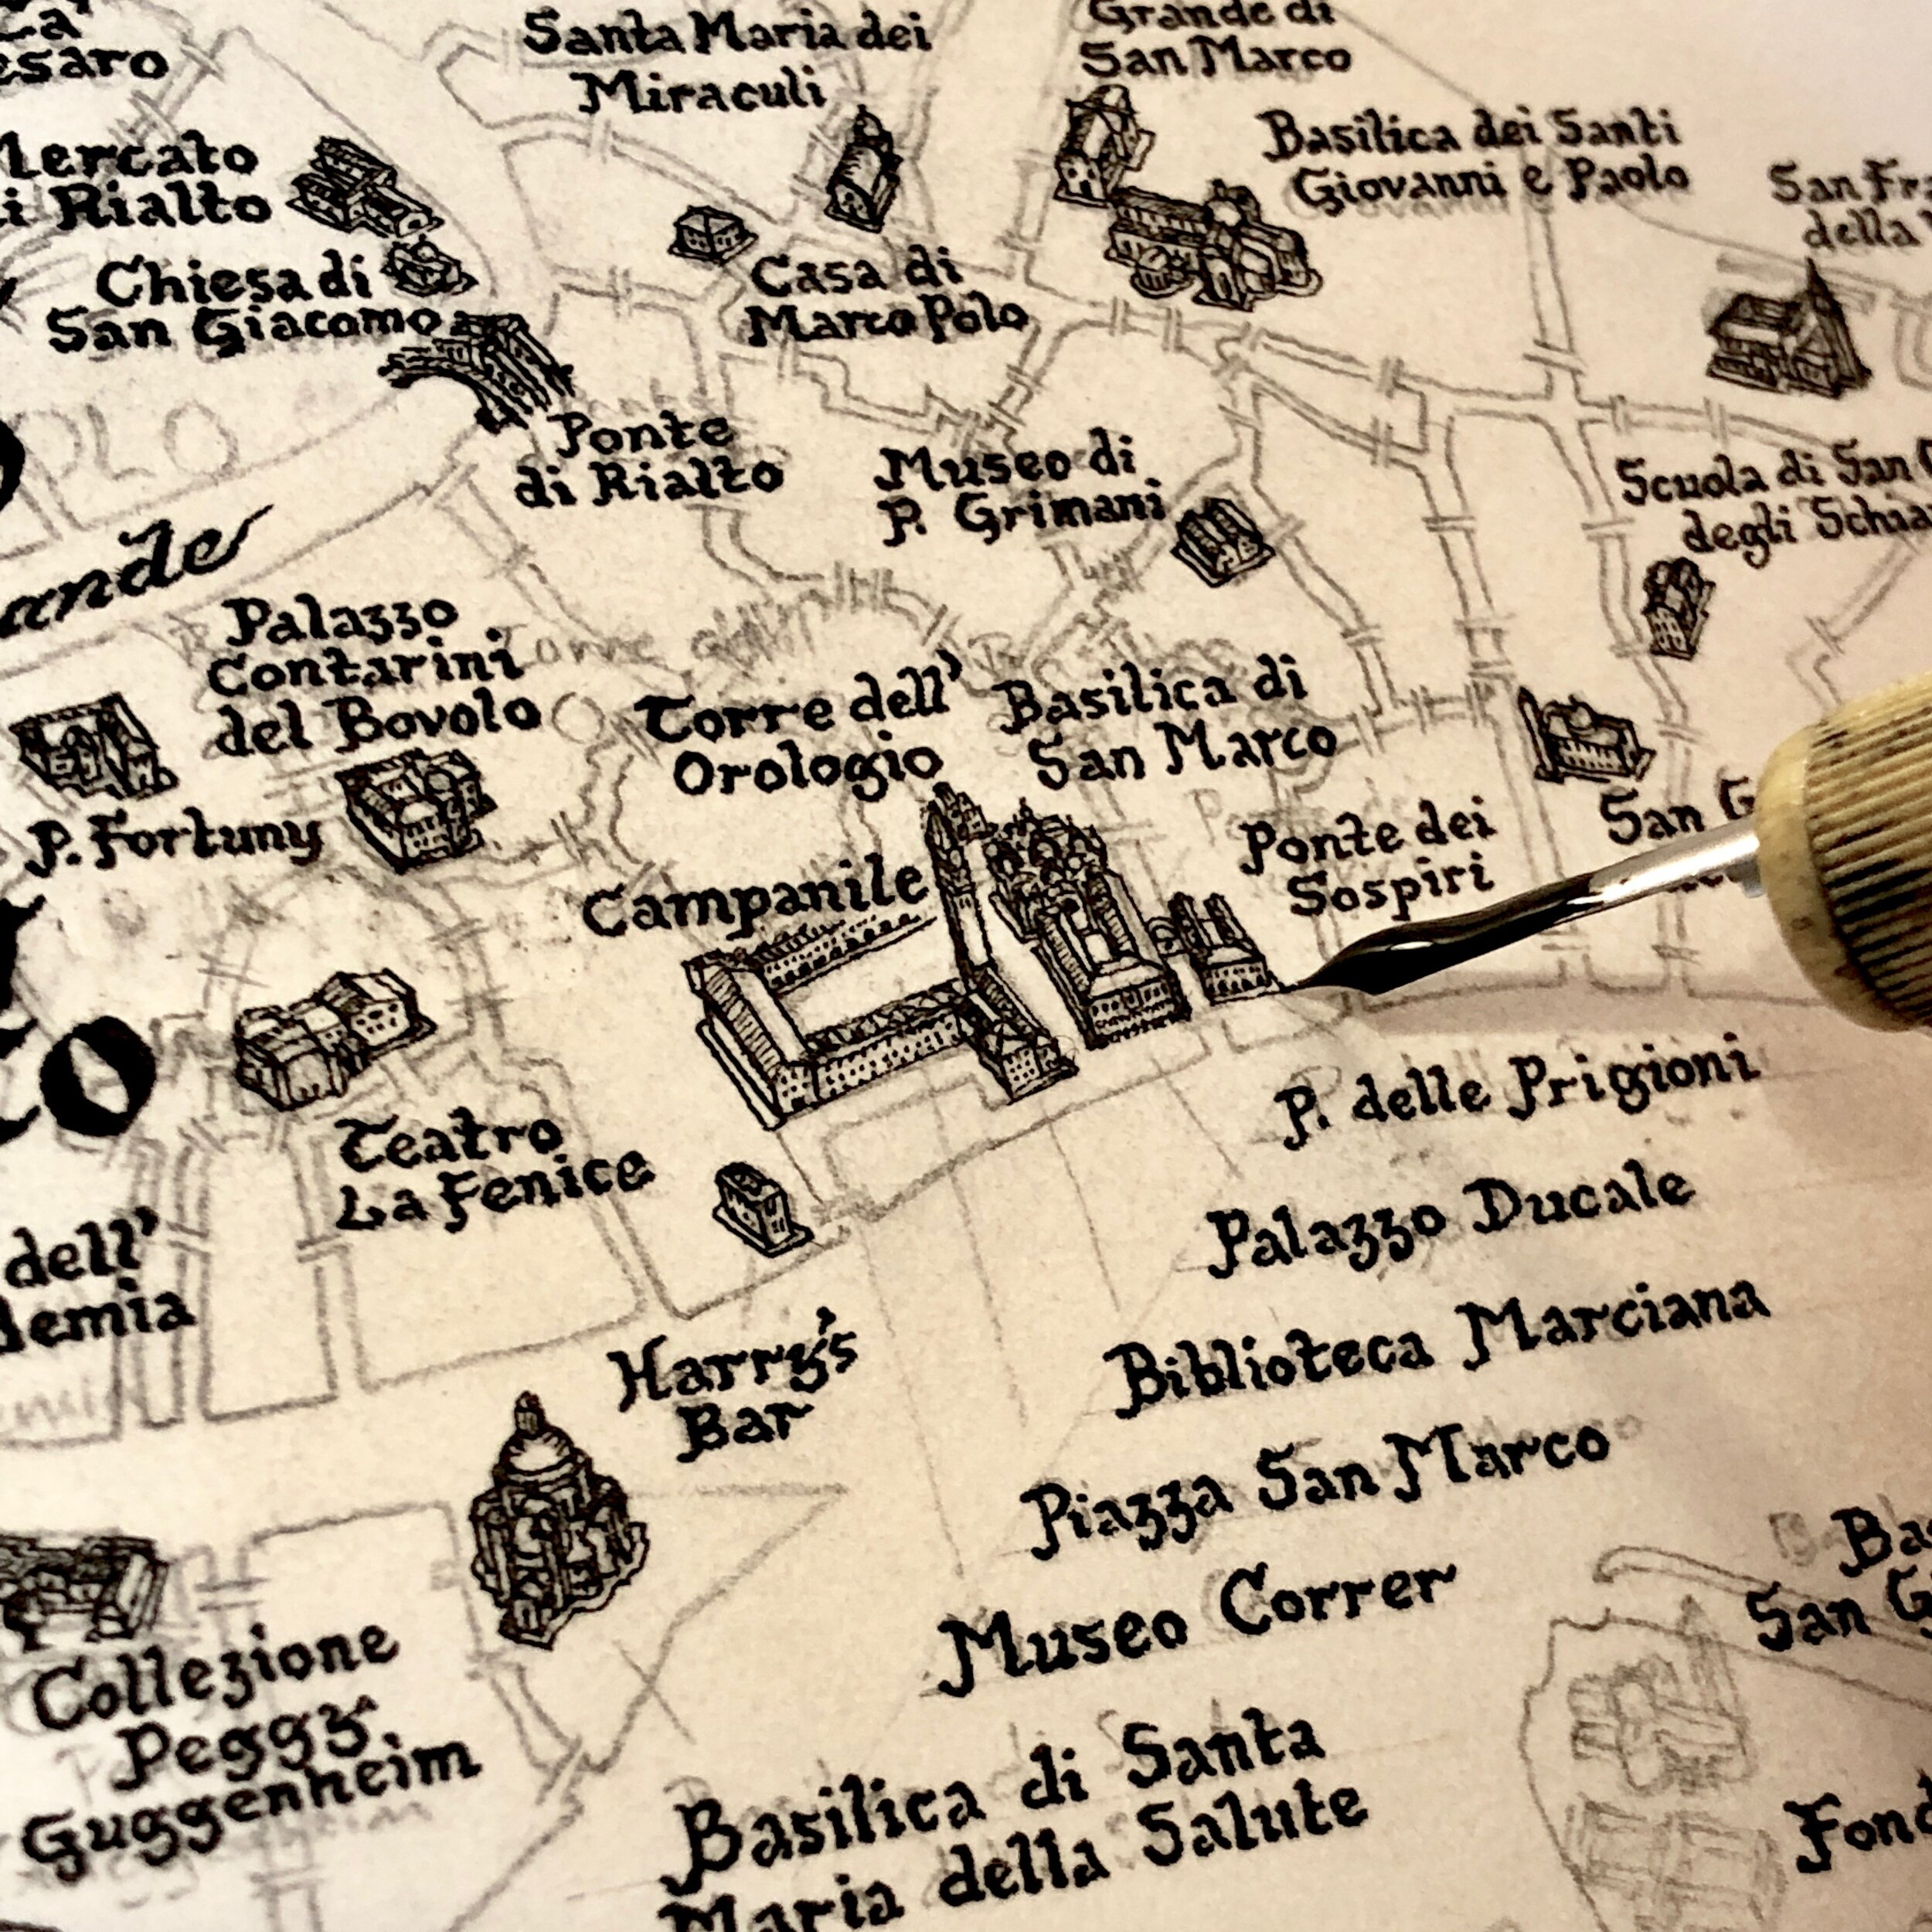 The  Venice Map  - toponyms, then buildings